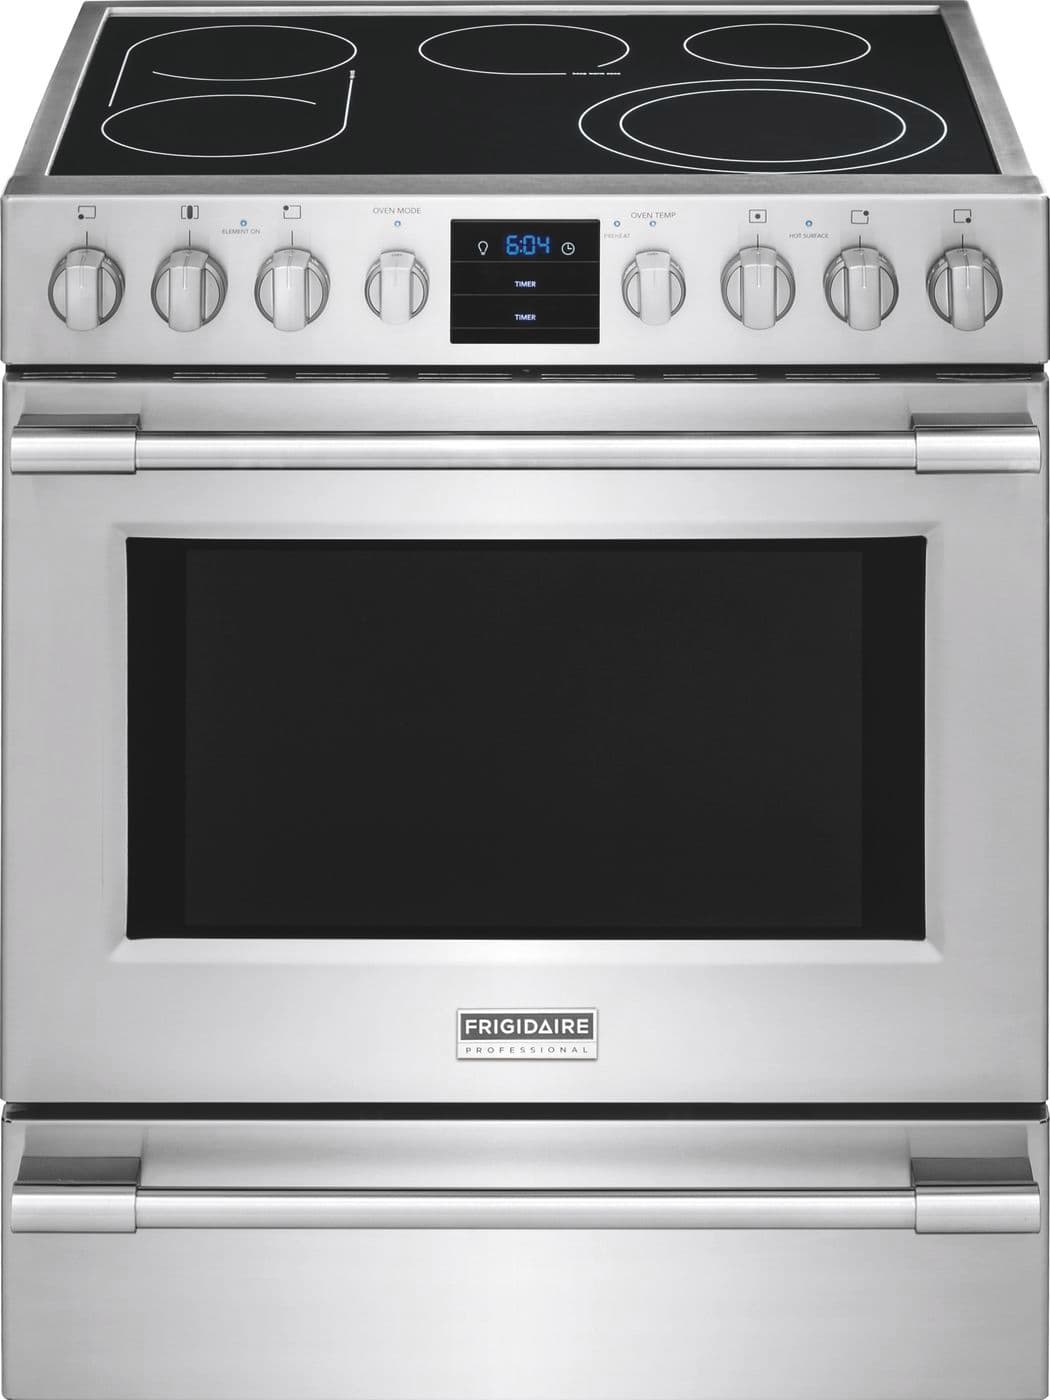 "Frigidaire 30"" Electric Front Control Freestanding"